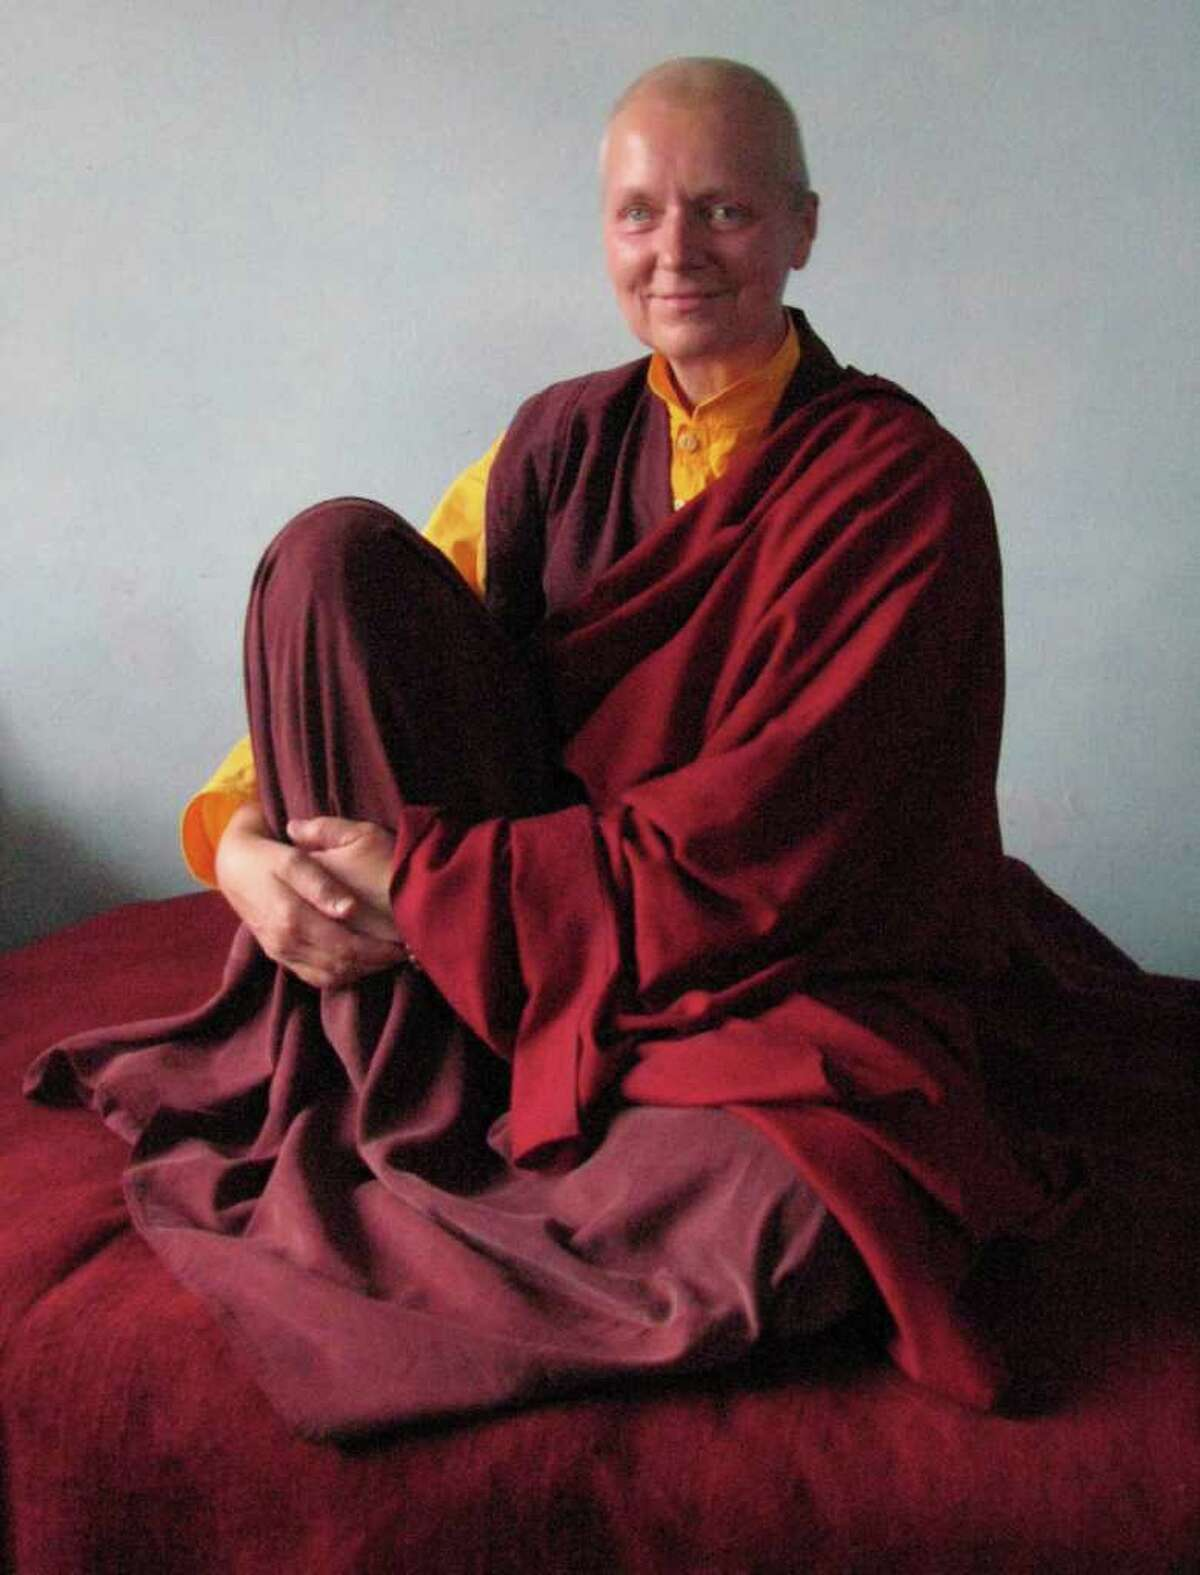 Greenwich native Kaz Flanagan is a fully ordained Buddhist nun. Currently living in India, Flanagan is hoping to translate a Buddhist practice, called the The Troma Nagmo Practice of Chöd, into English.